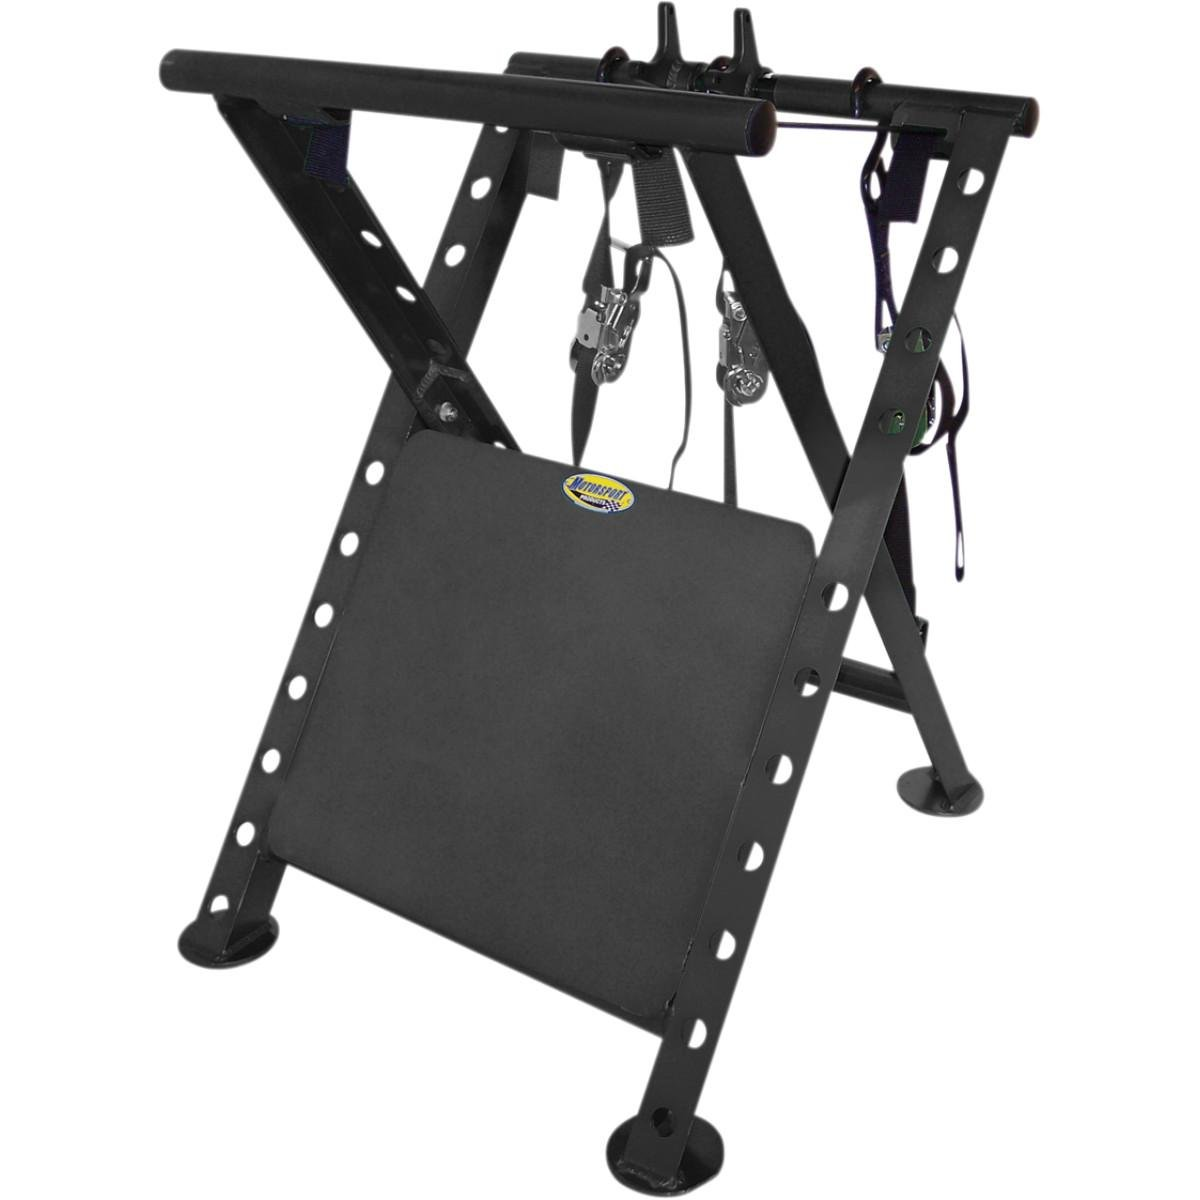 Motorsport Products Pro ATV X-Stand Black 90-2012 by Motorsport Products (Image #1)